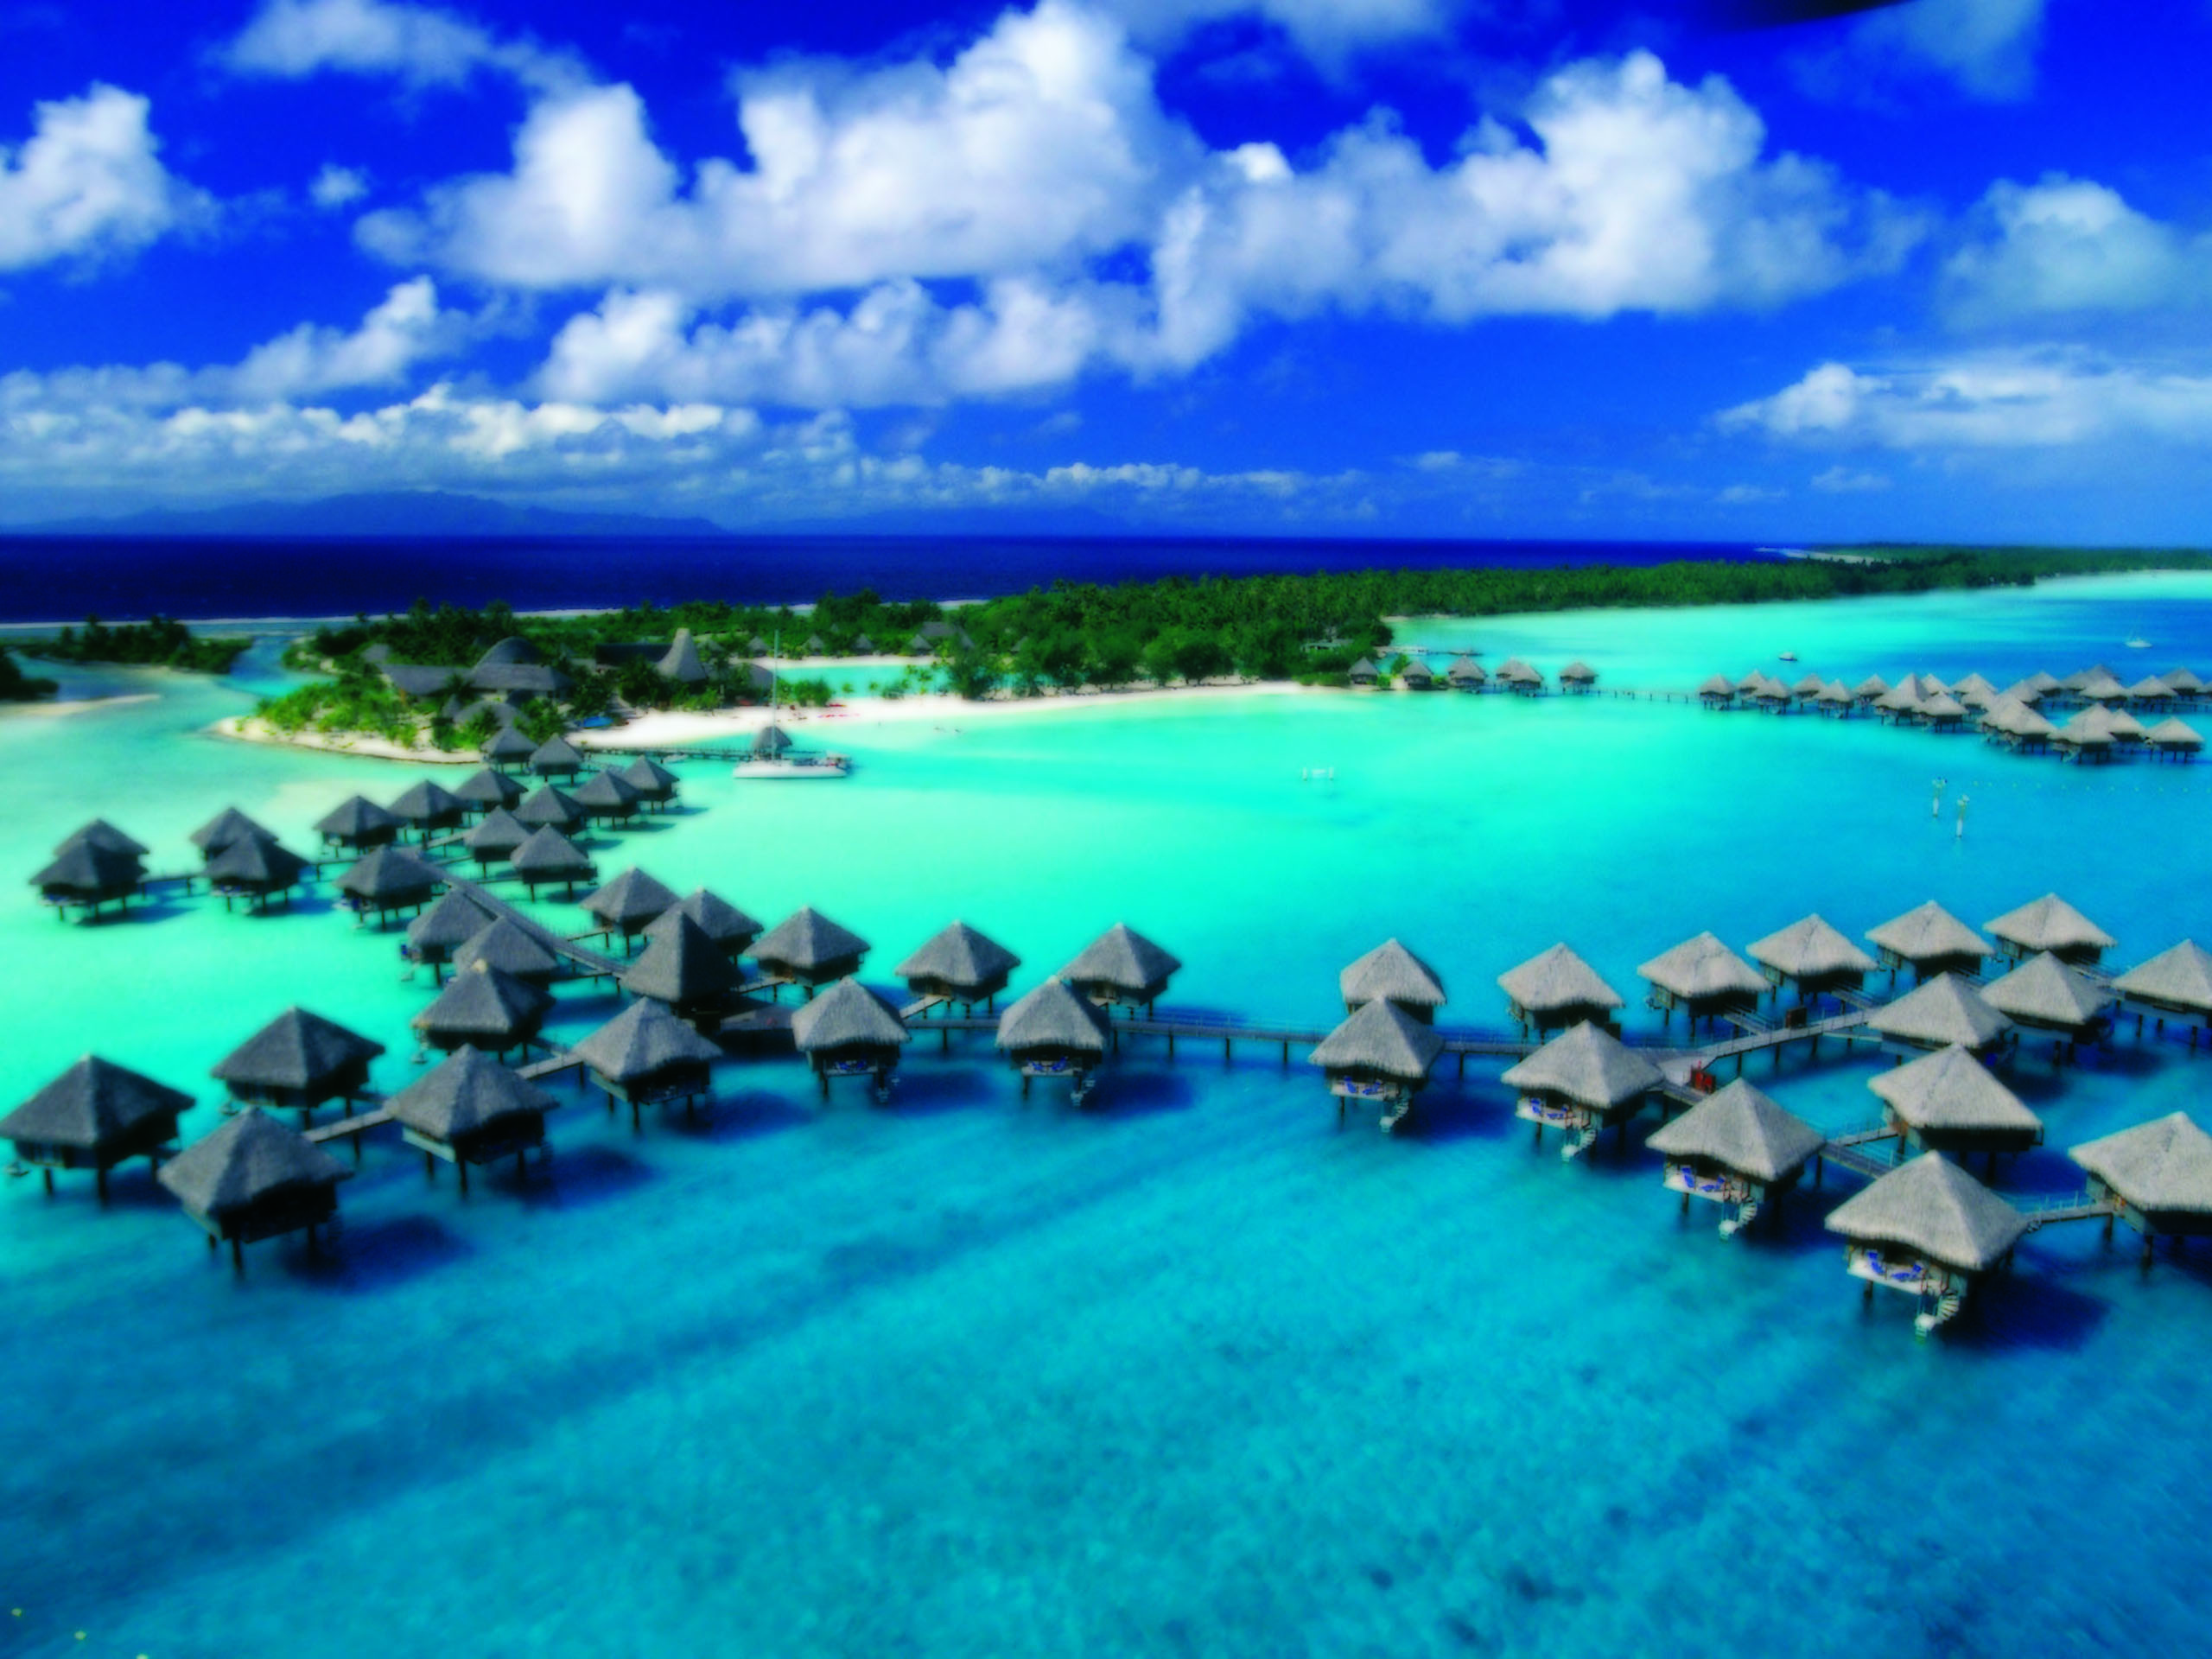 Bora Bora Wallpaper High Resolution Desktop wallpaper 800x600 2560x1920